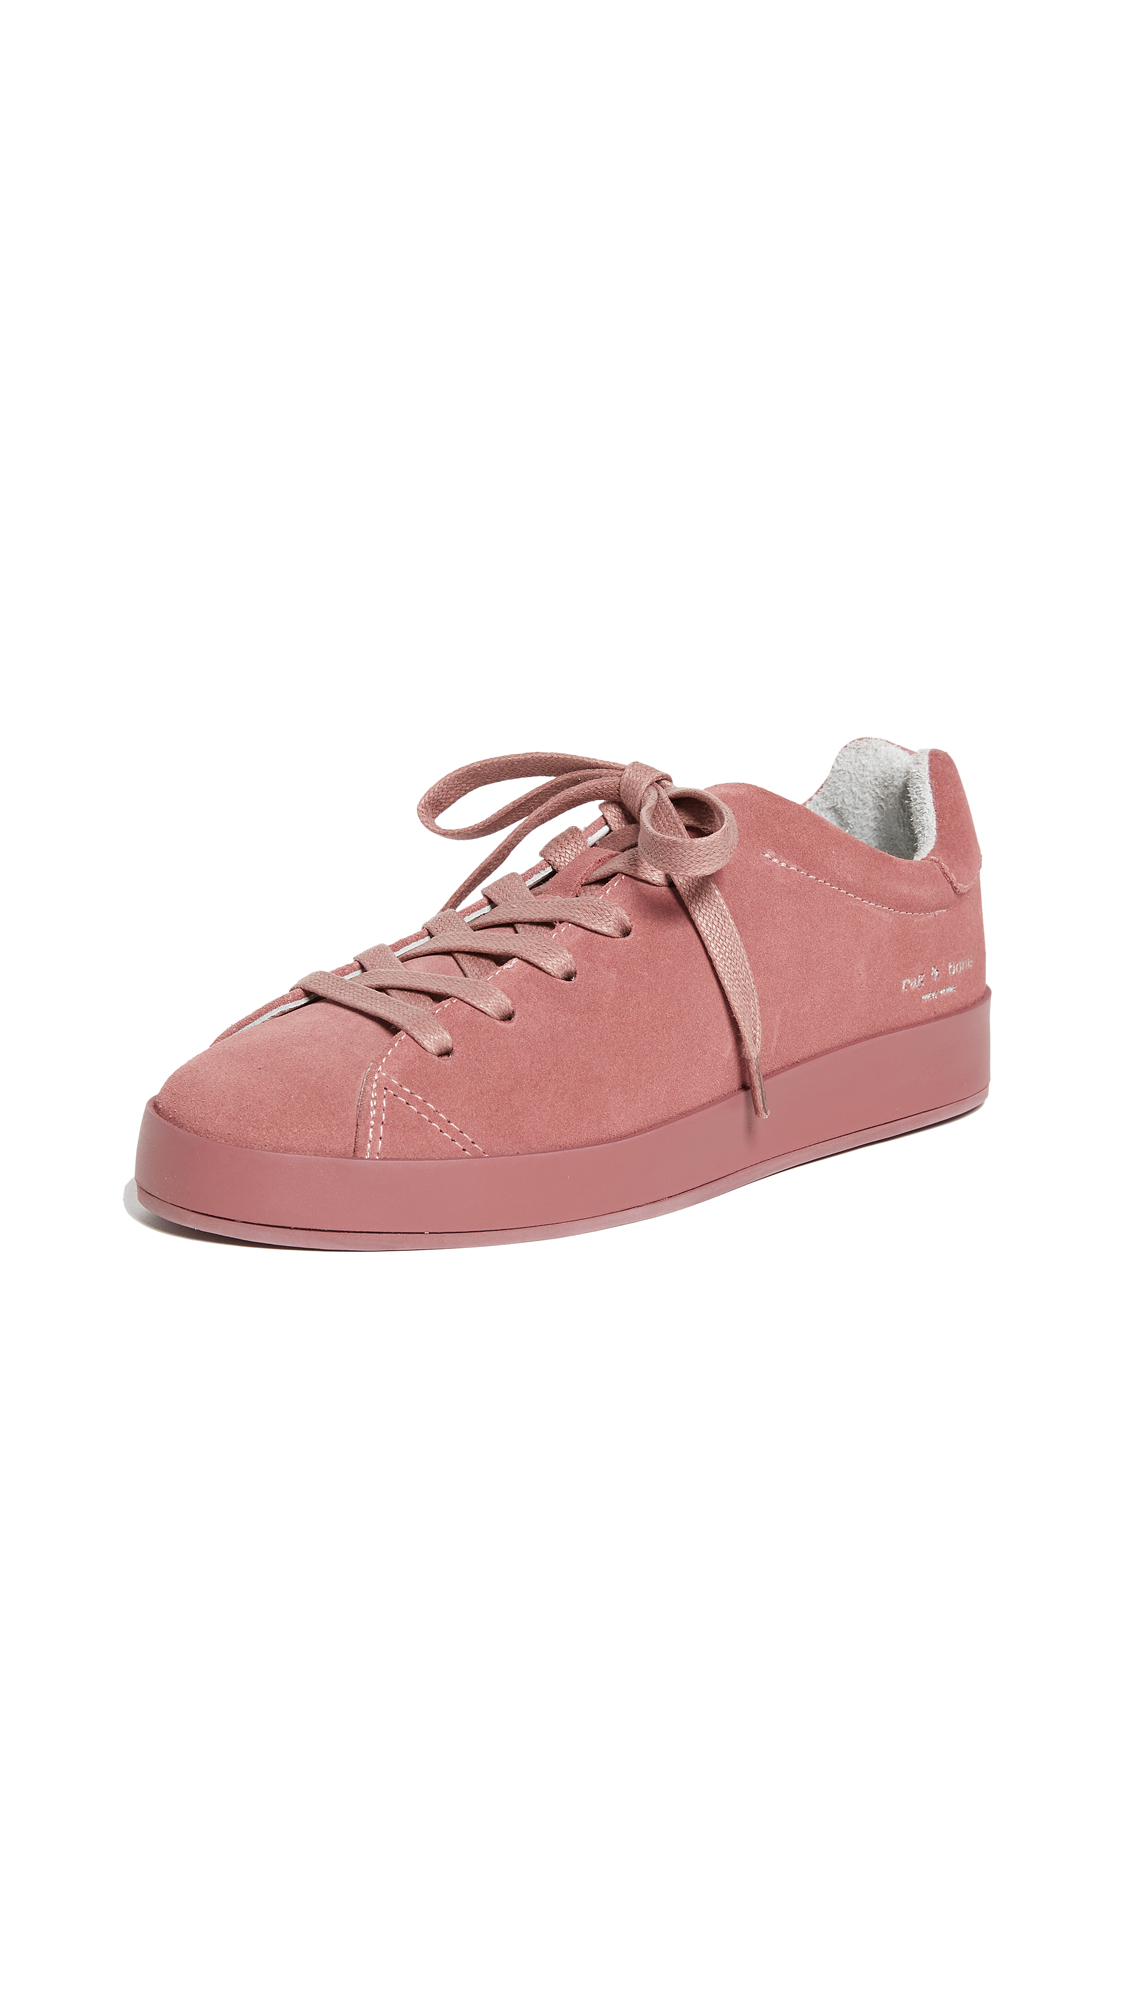 Rag & Bone RB1 Low Sneakers - Mauve